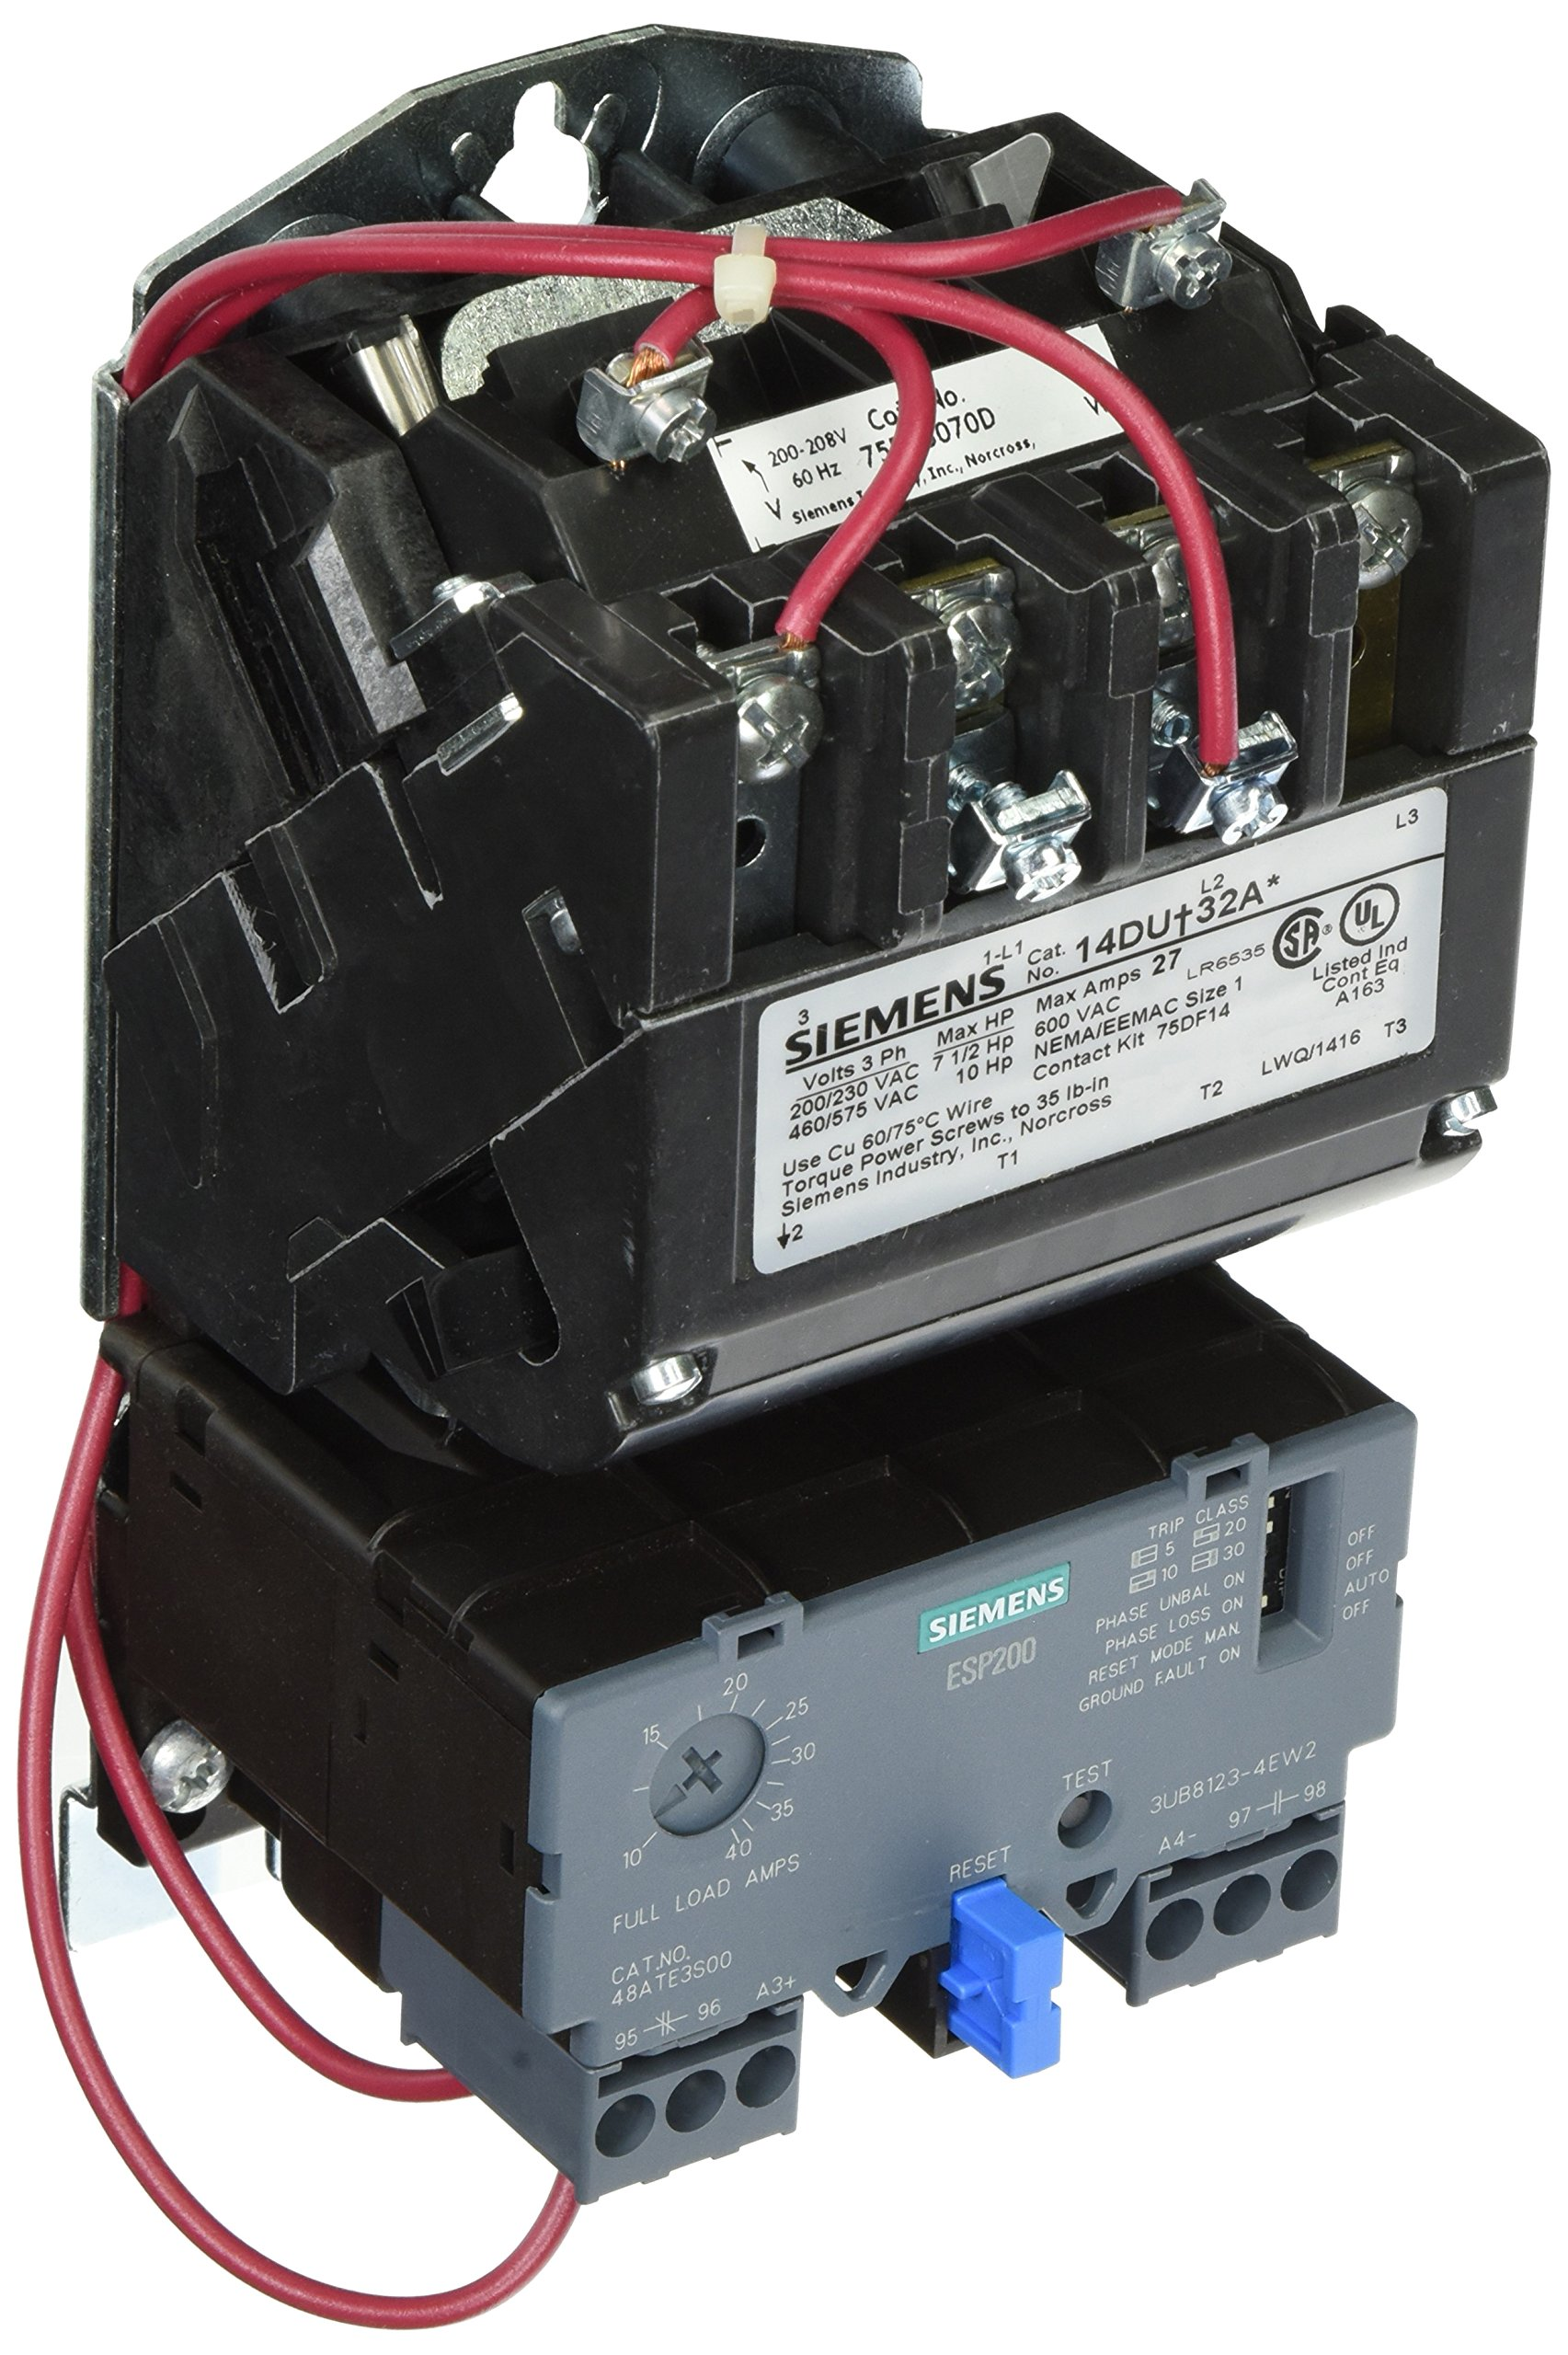 Siemens 14DUE32AD Heavy Duty Motor Starter, Solid State Overload, Auto/Manual Reset, Open Type, Standard Width Enclosure, 3 Phase, 3 Pole, 1 NEMA Size, 10-40A Amp Range, A1 Frame Size, 200-208 at 60Hz Coil Voltage